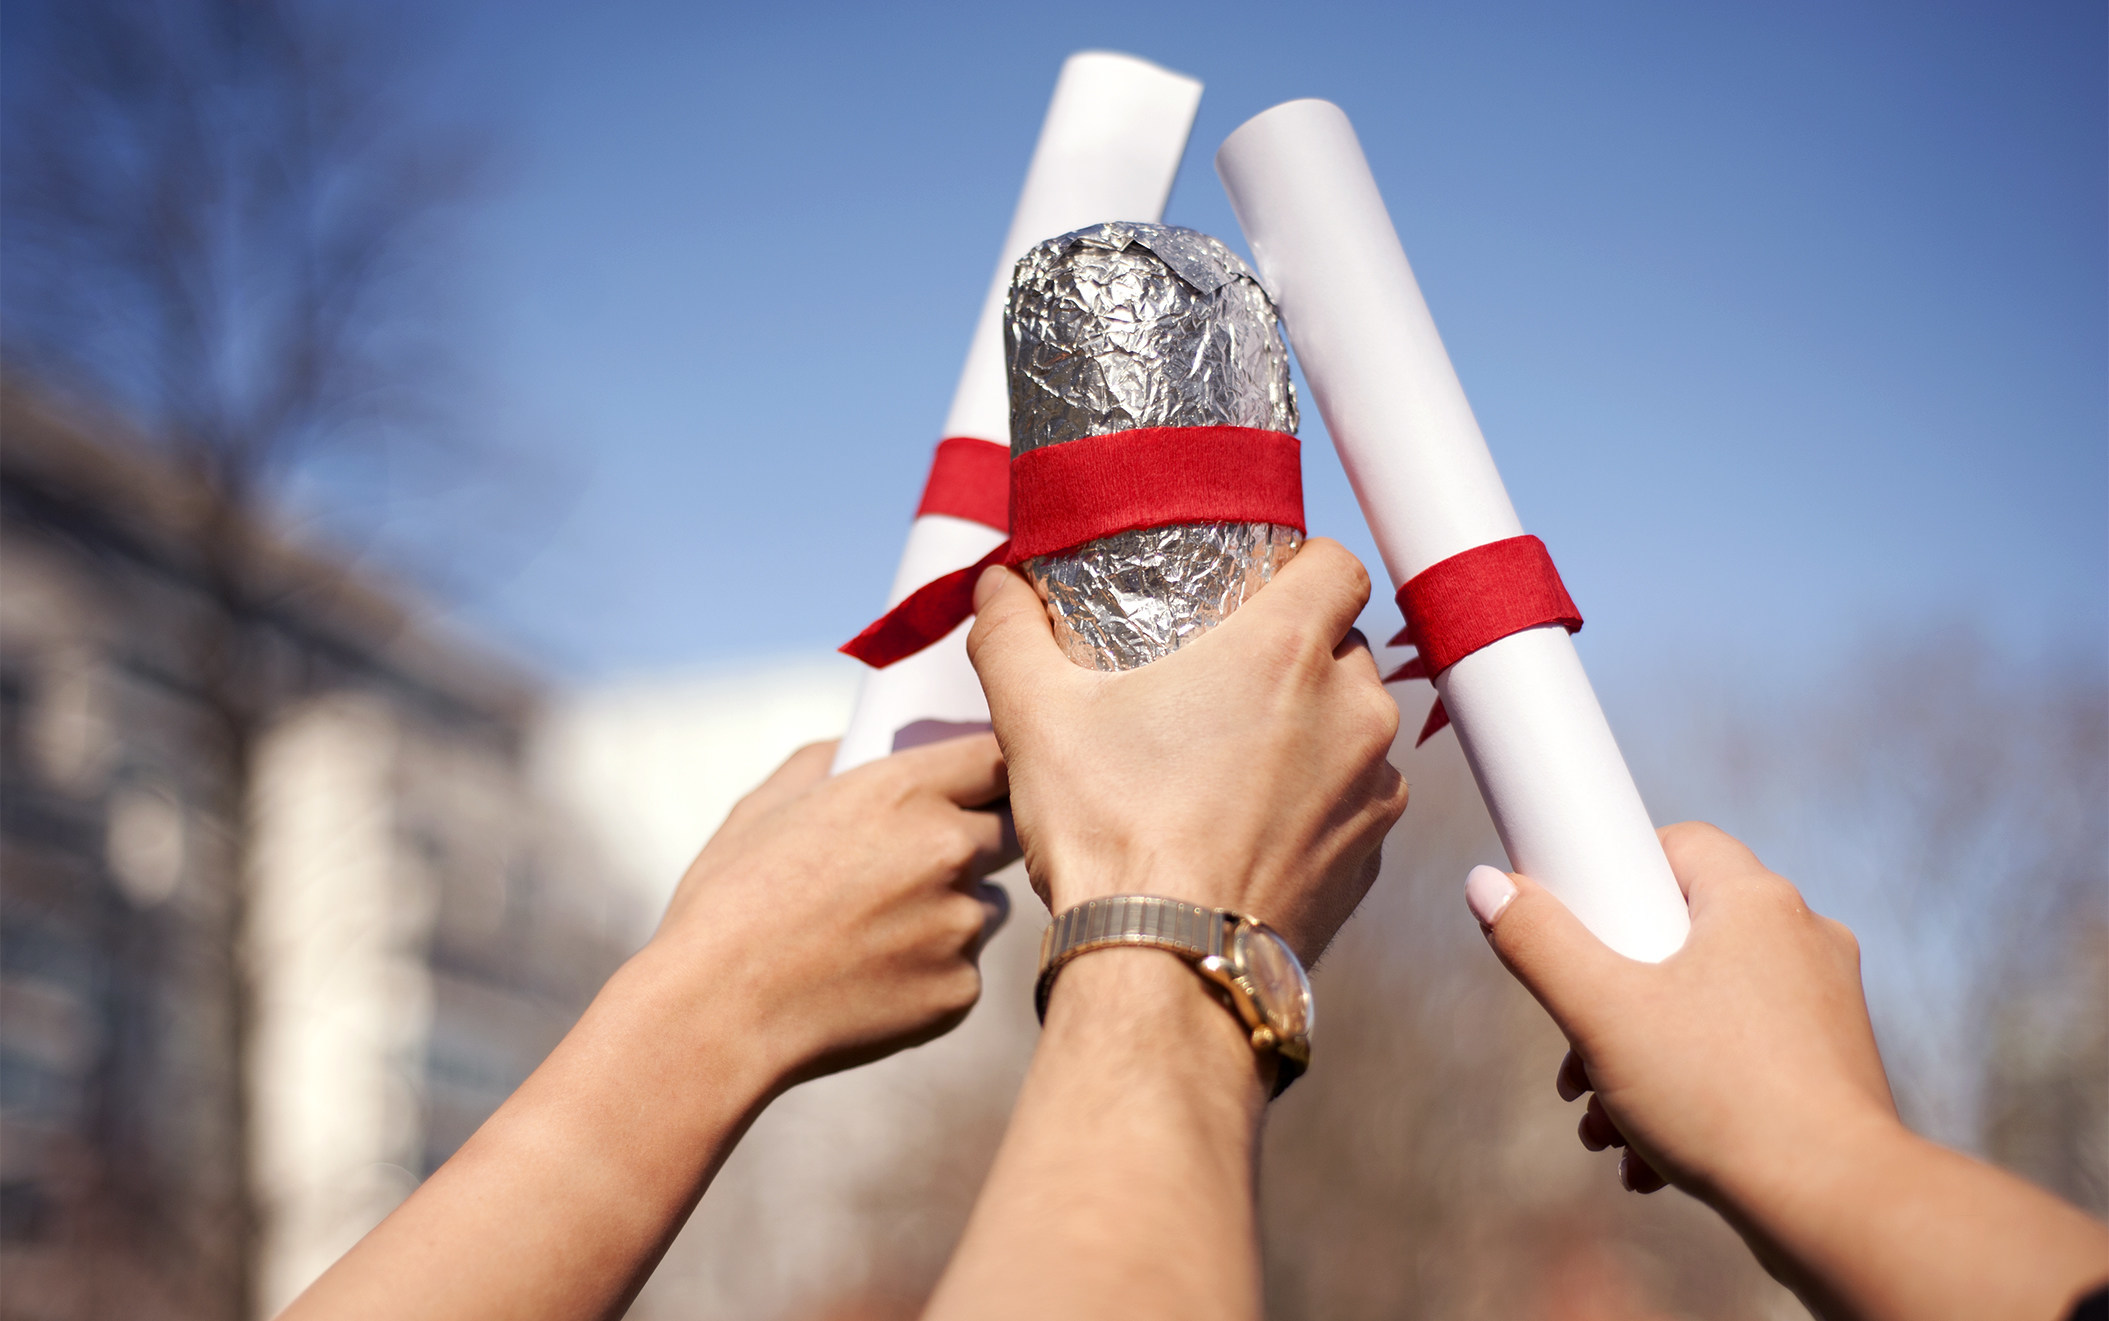 Photo of hands holding up diplomas and a Chipotle burrito